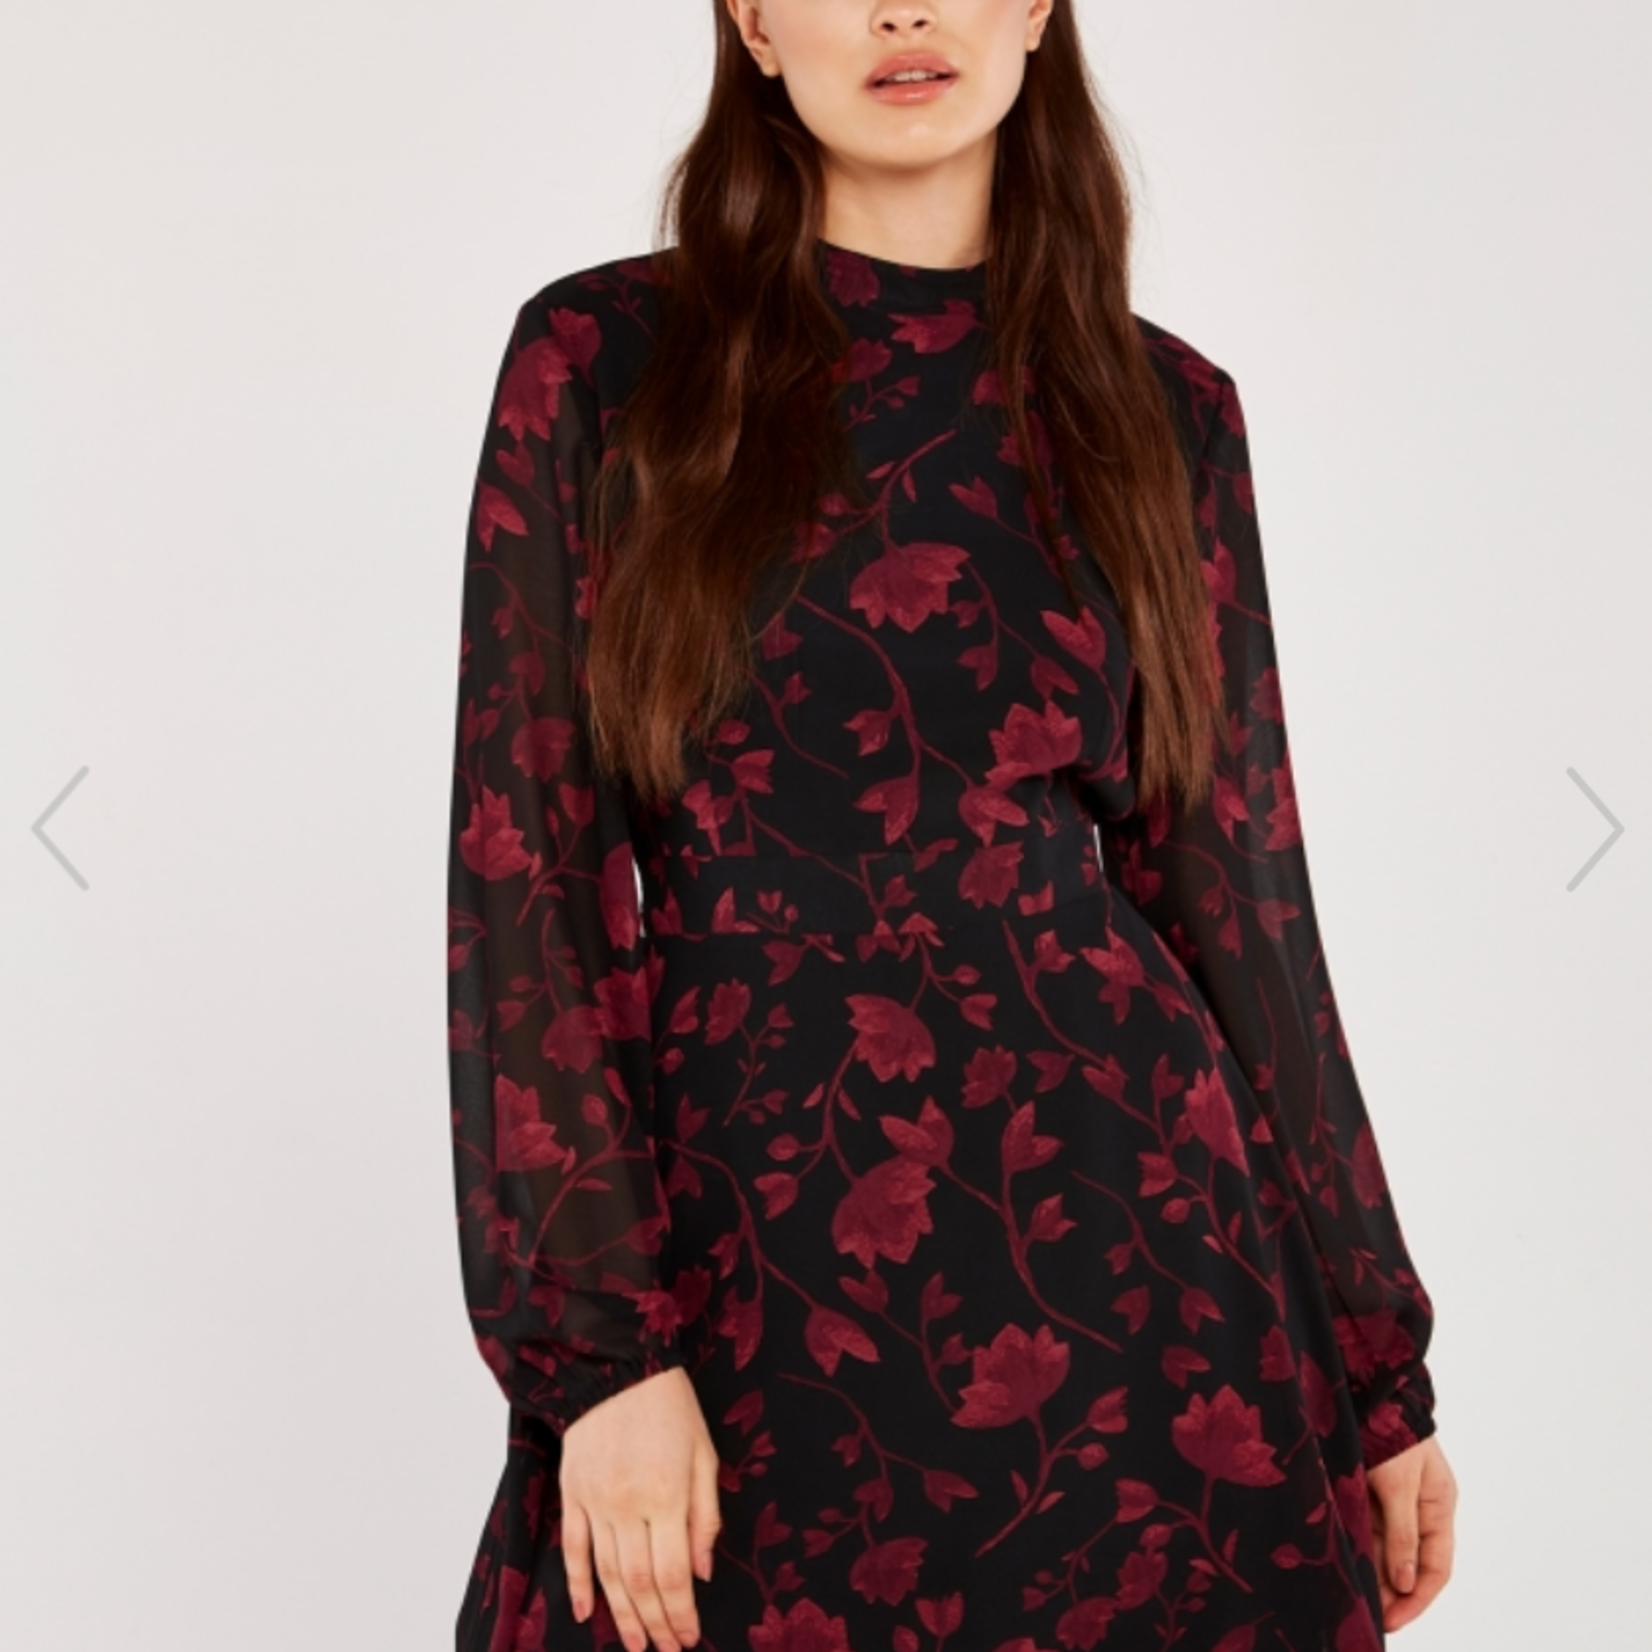 apricot - silhouette branches dress